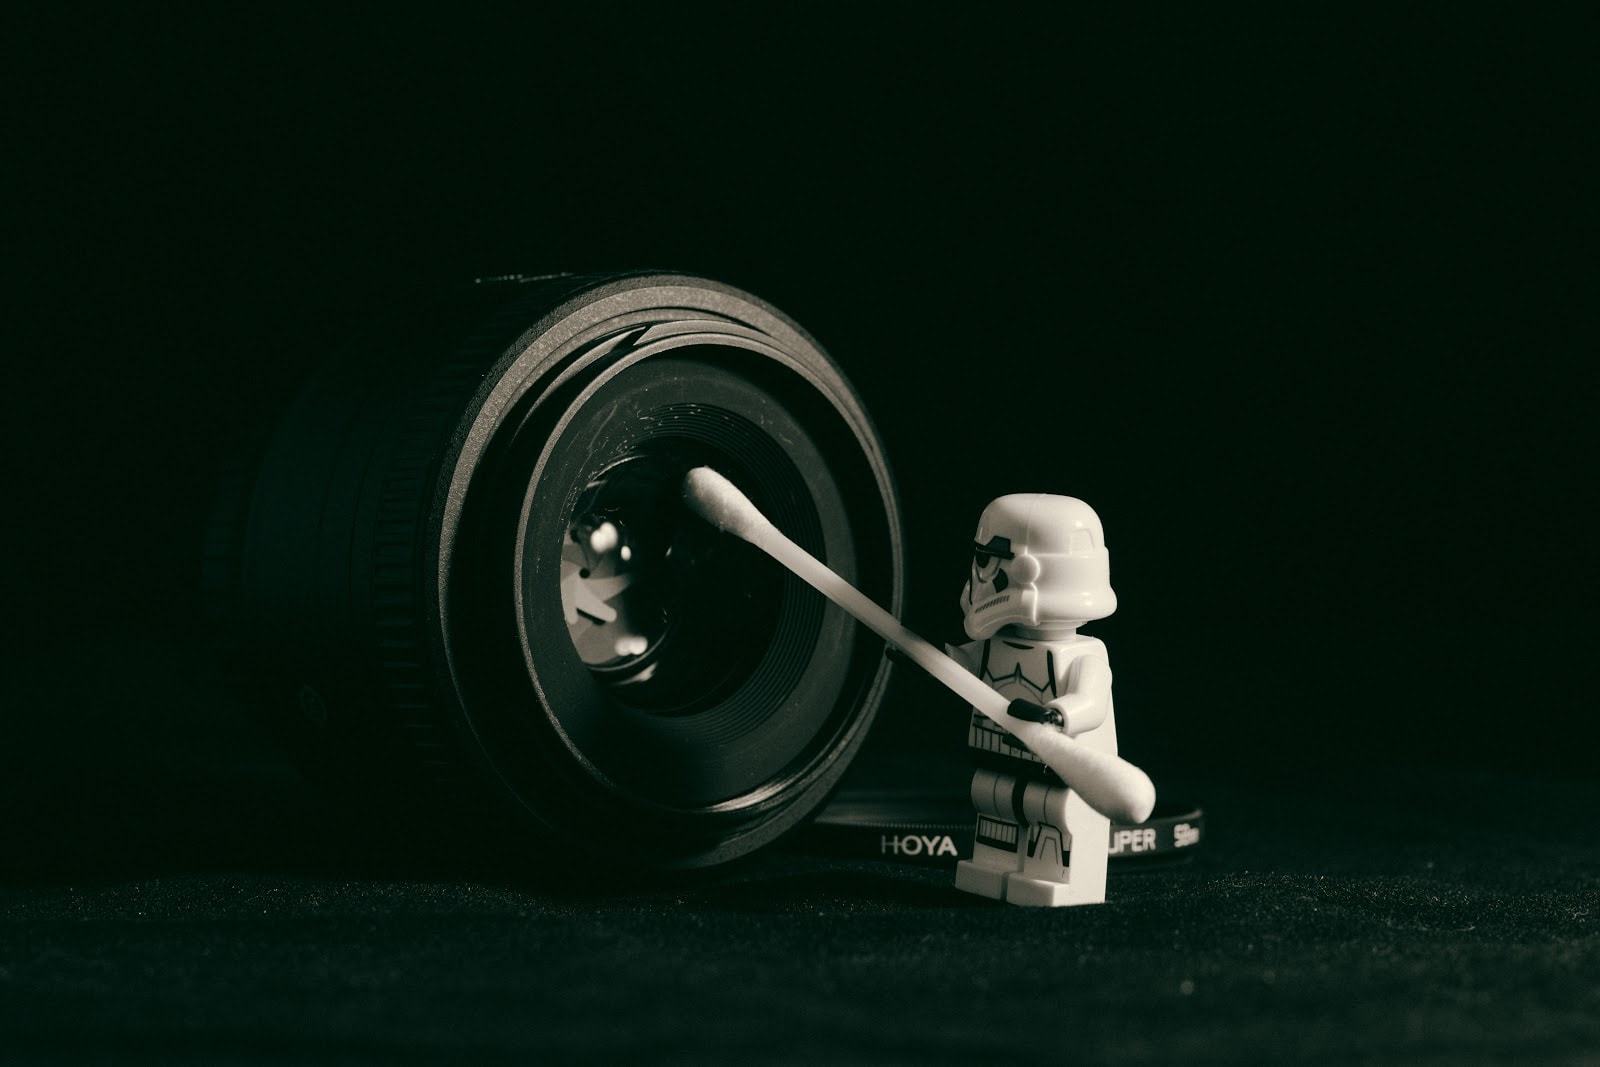 Starwars and lens